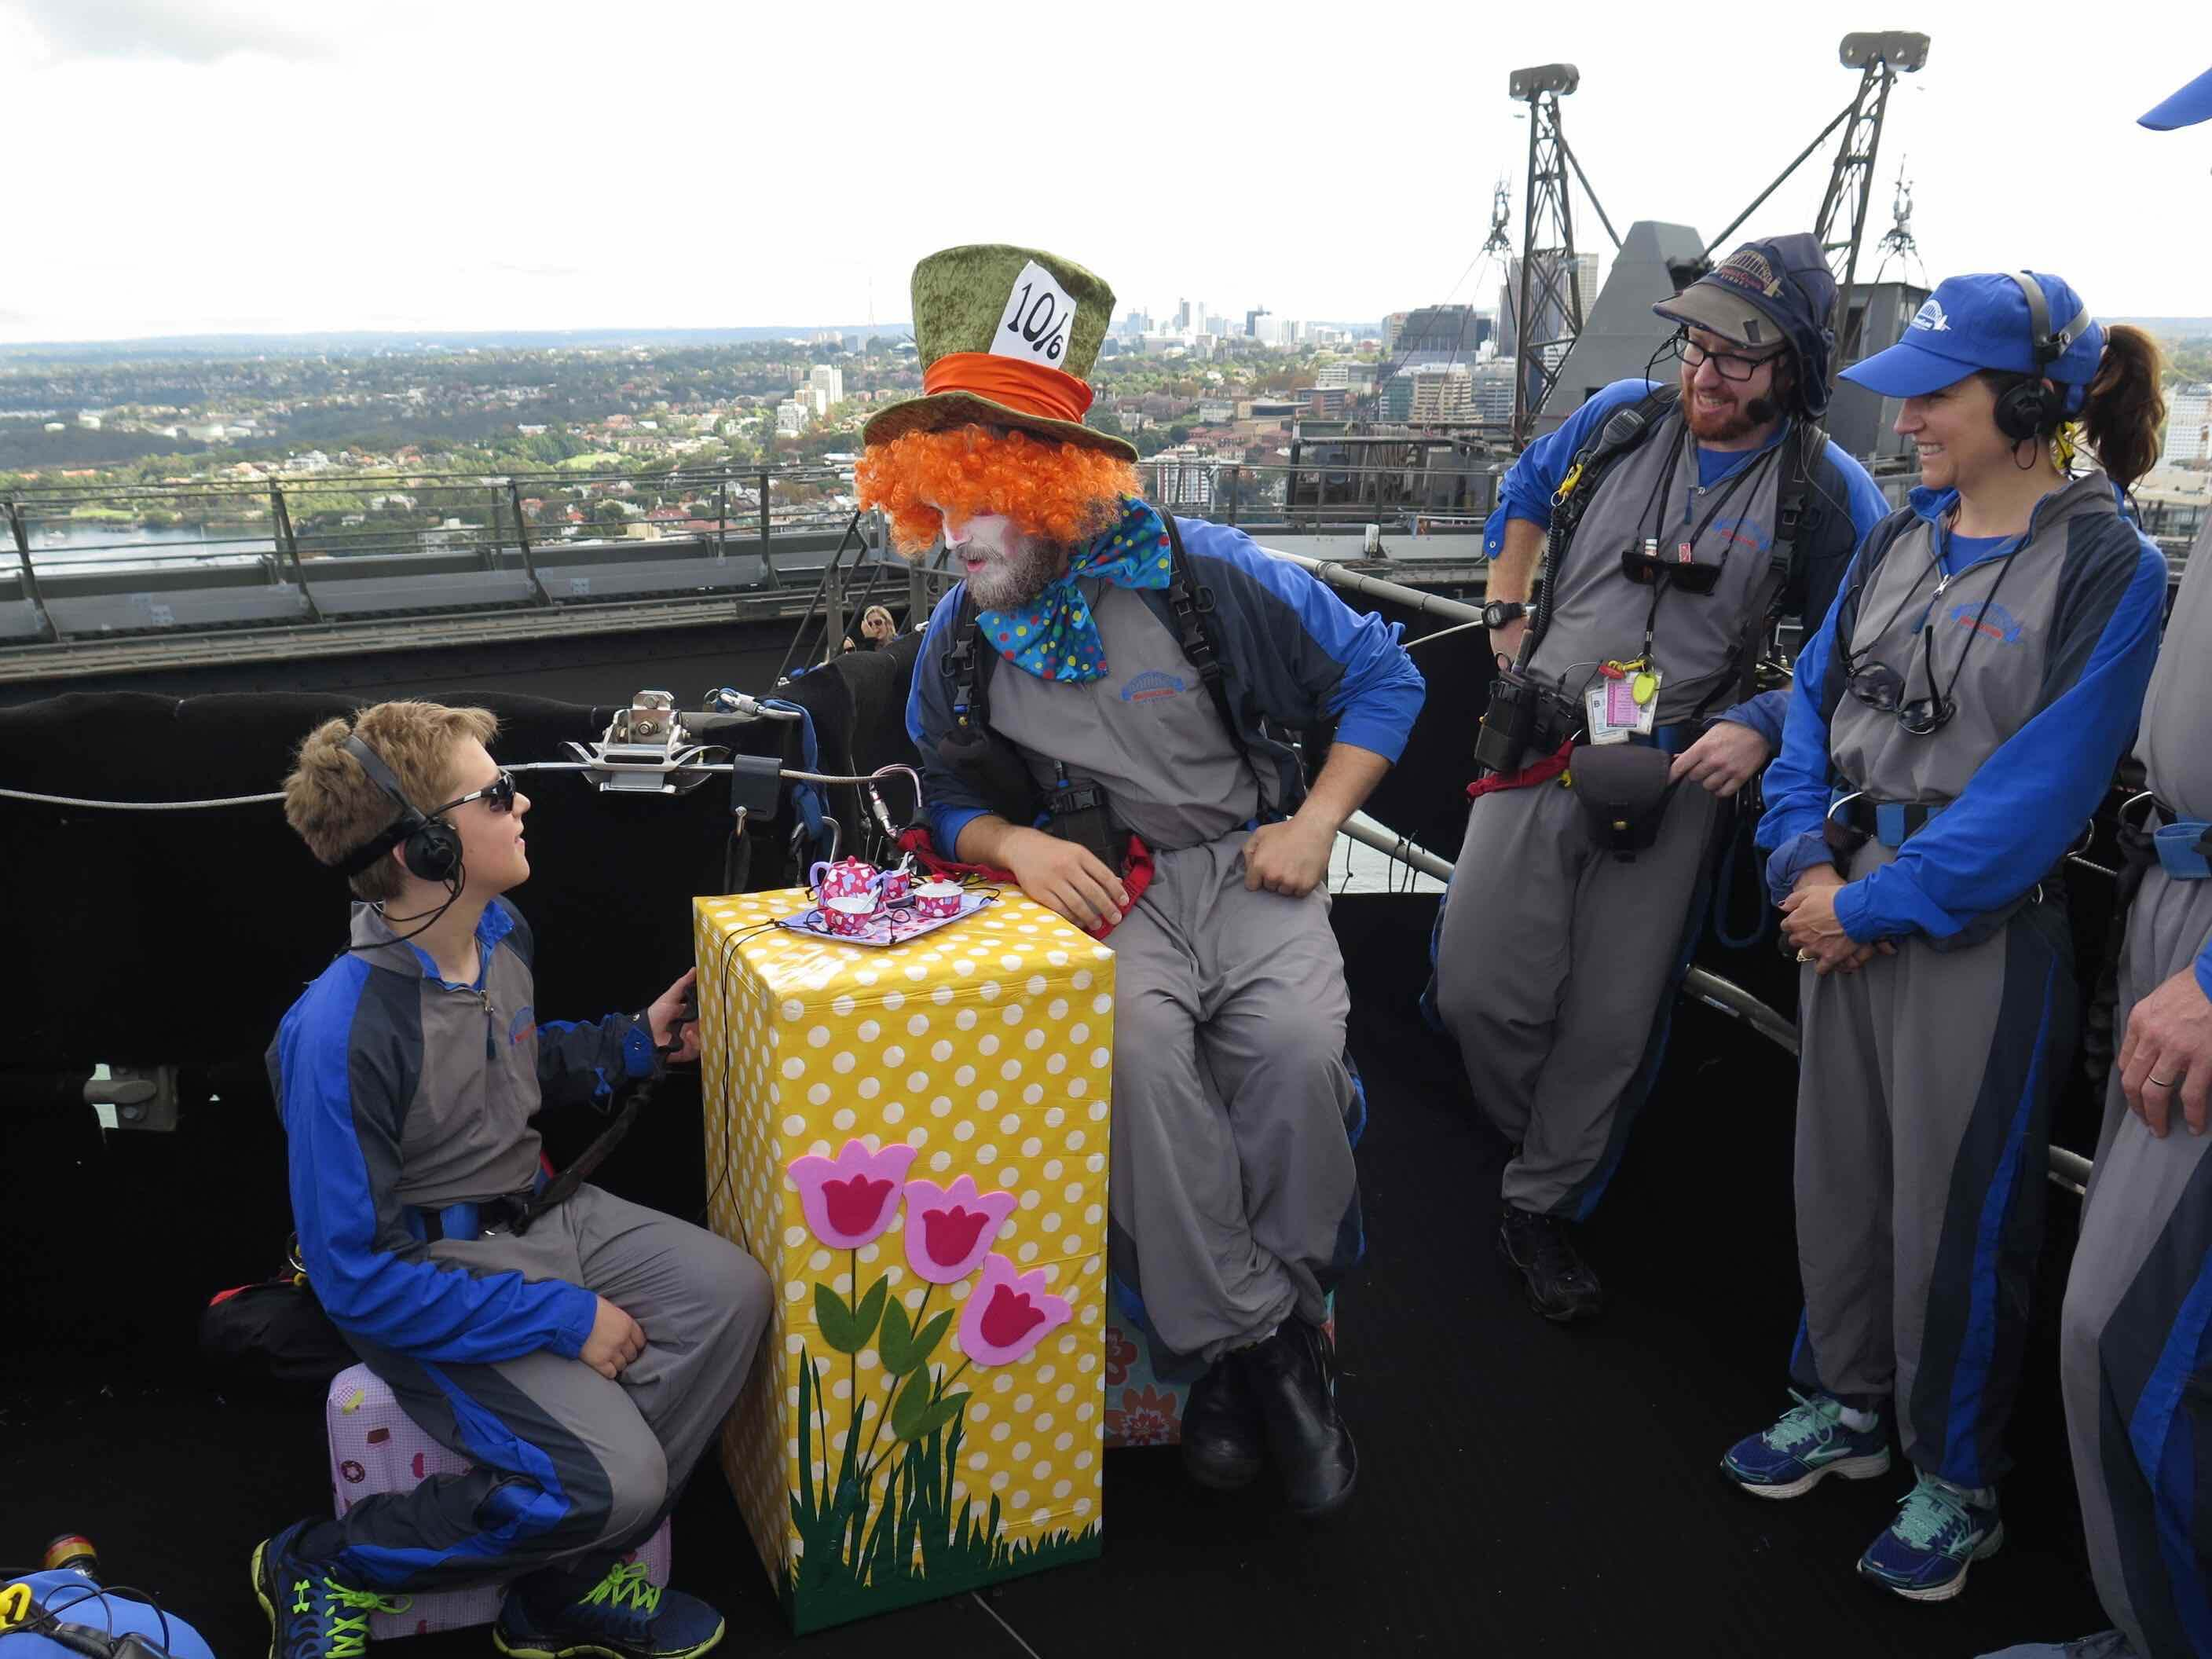 A Mad Hatter Tea Party on Bridgeclimb